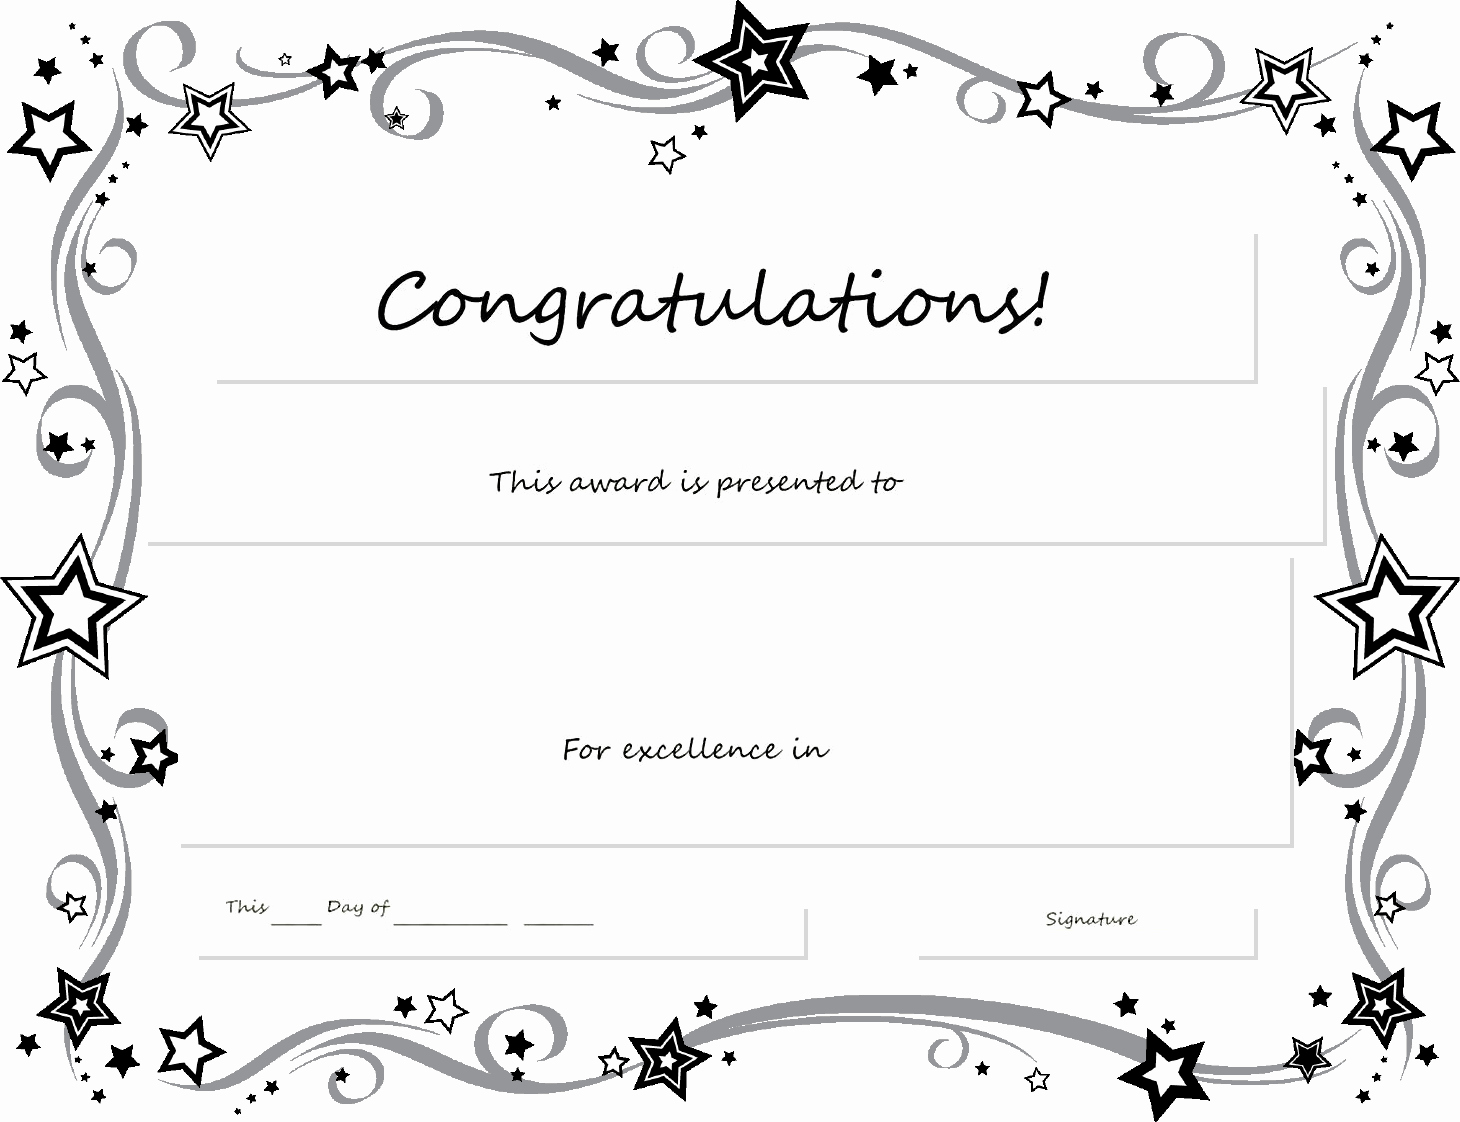 Free Downloadable Award Certificate Templates Fresh Certificate Template Word Certificate Templates Trakore